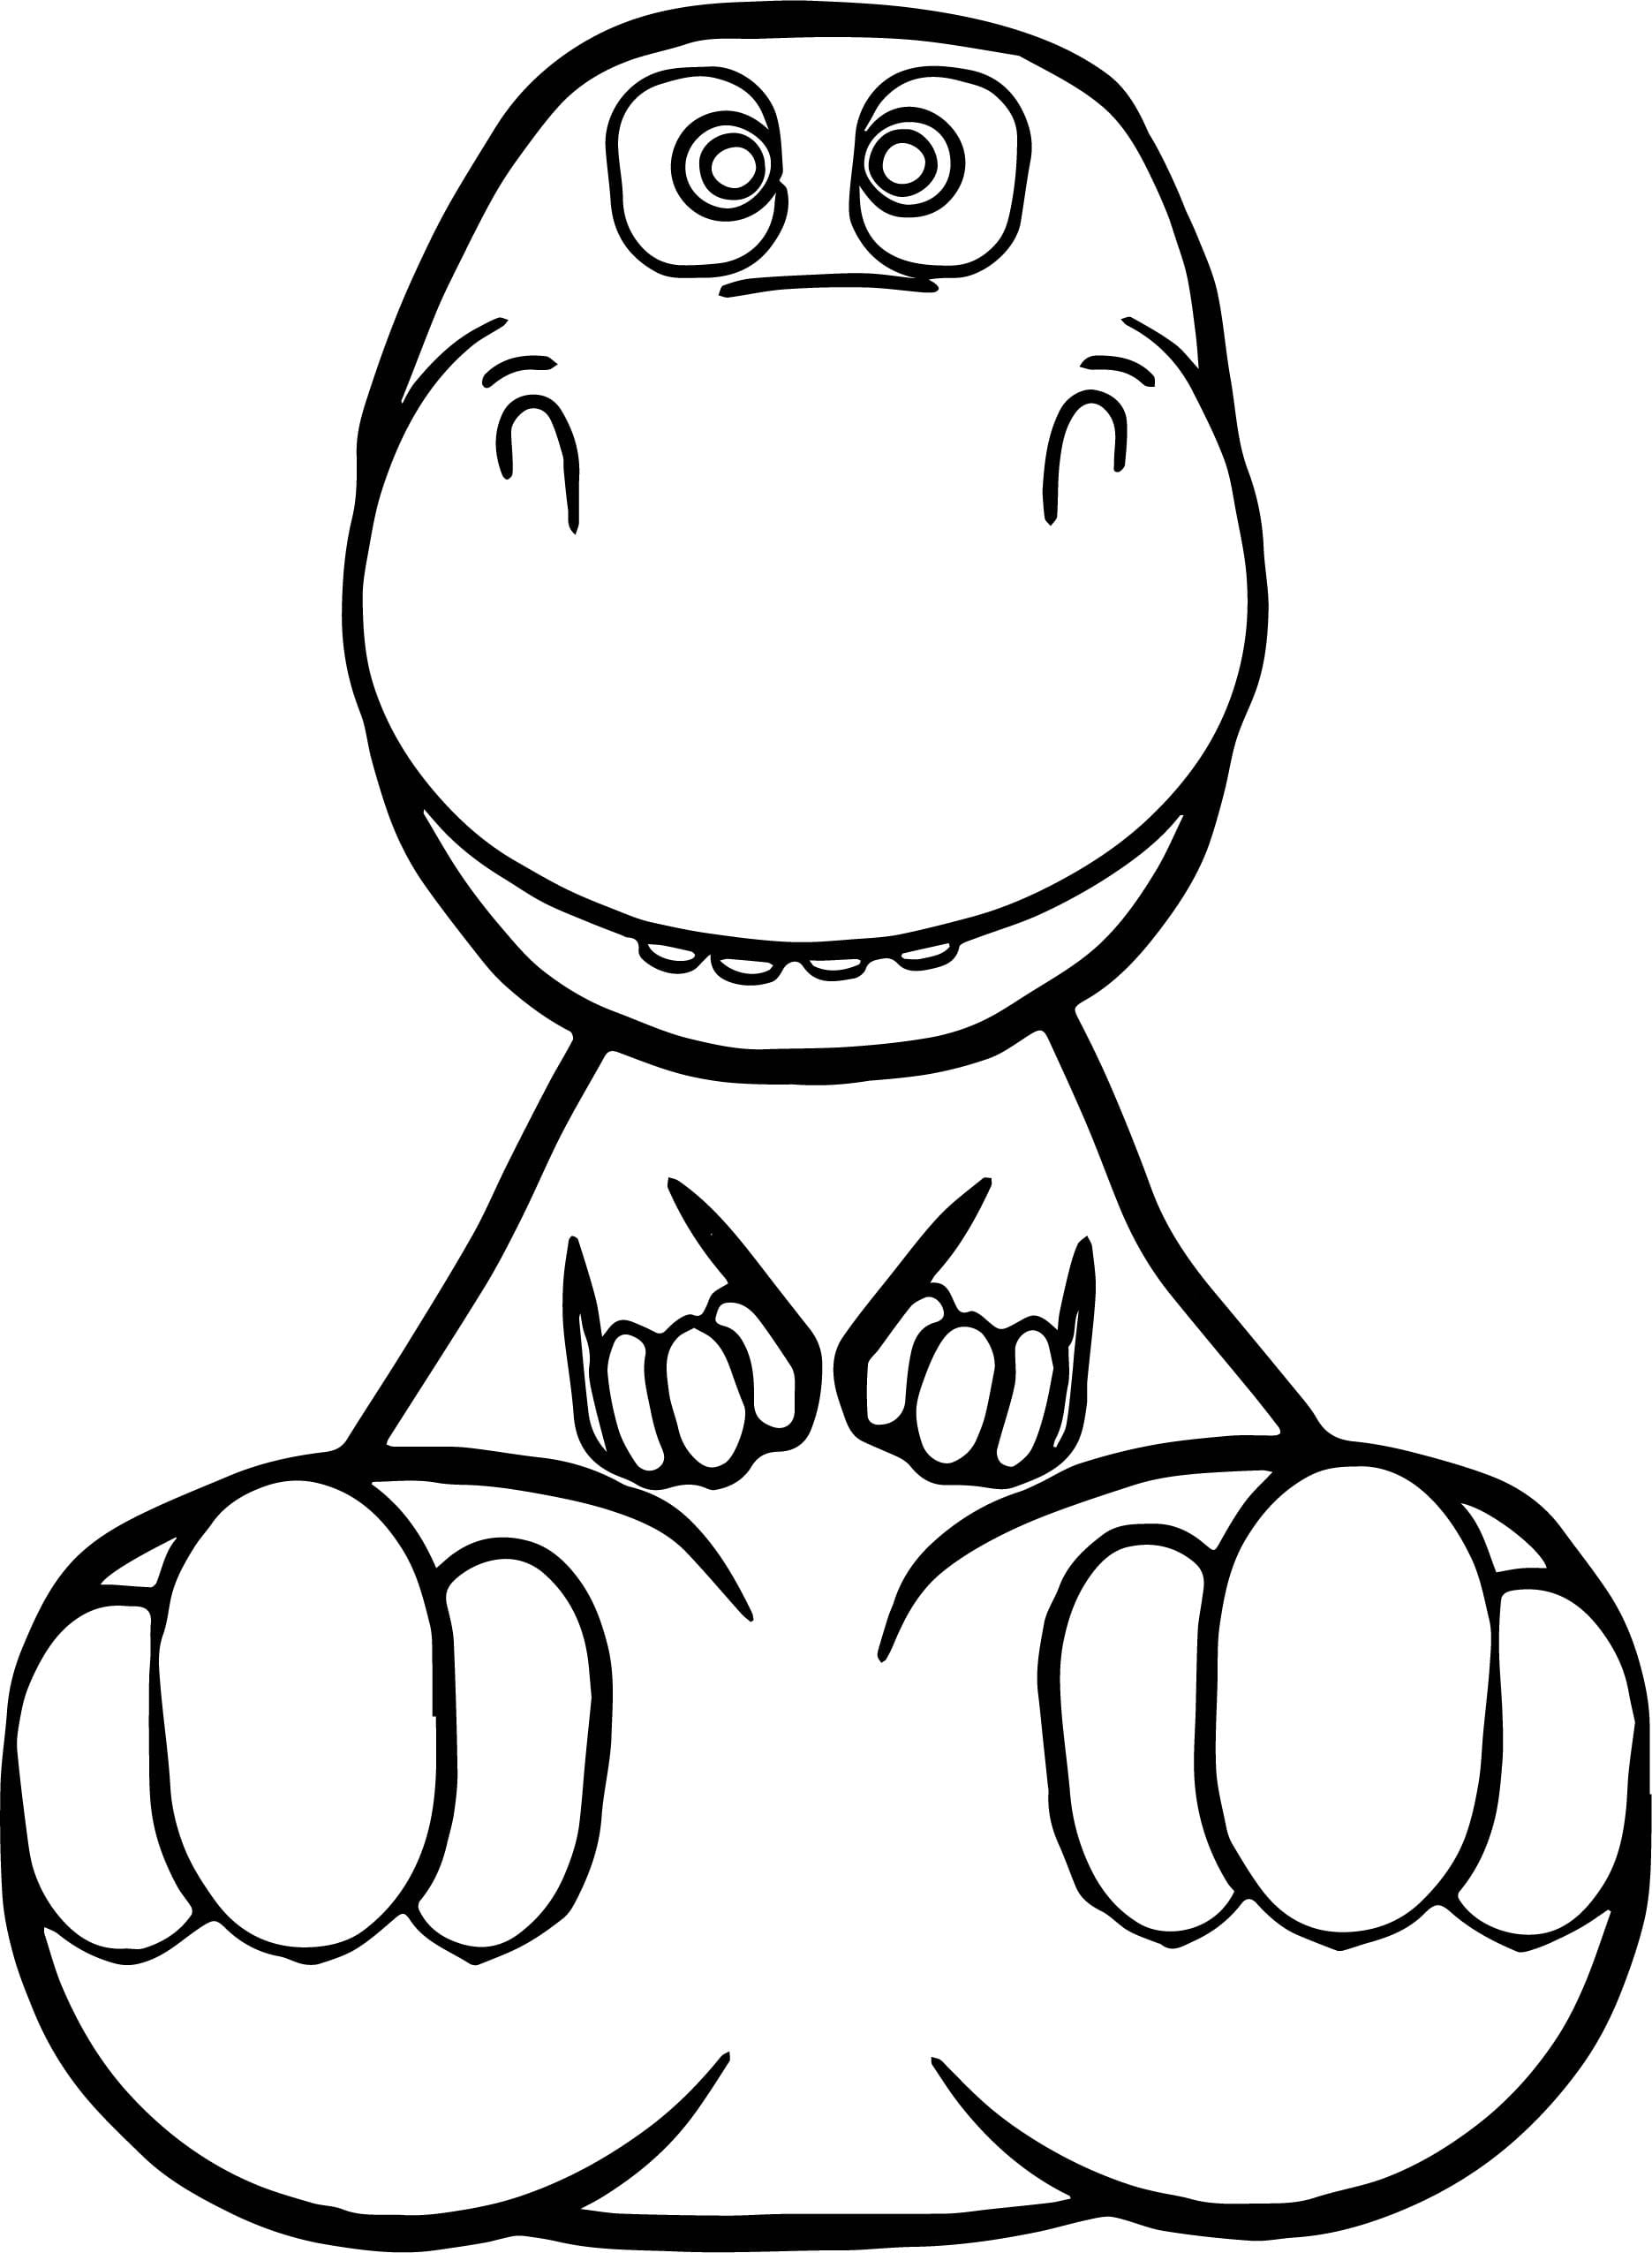 Cartoon Dinosaur Coloring Pages 20 T Baby Tips Cute And Cuddly